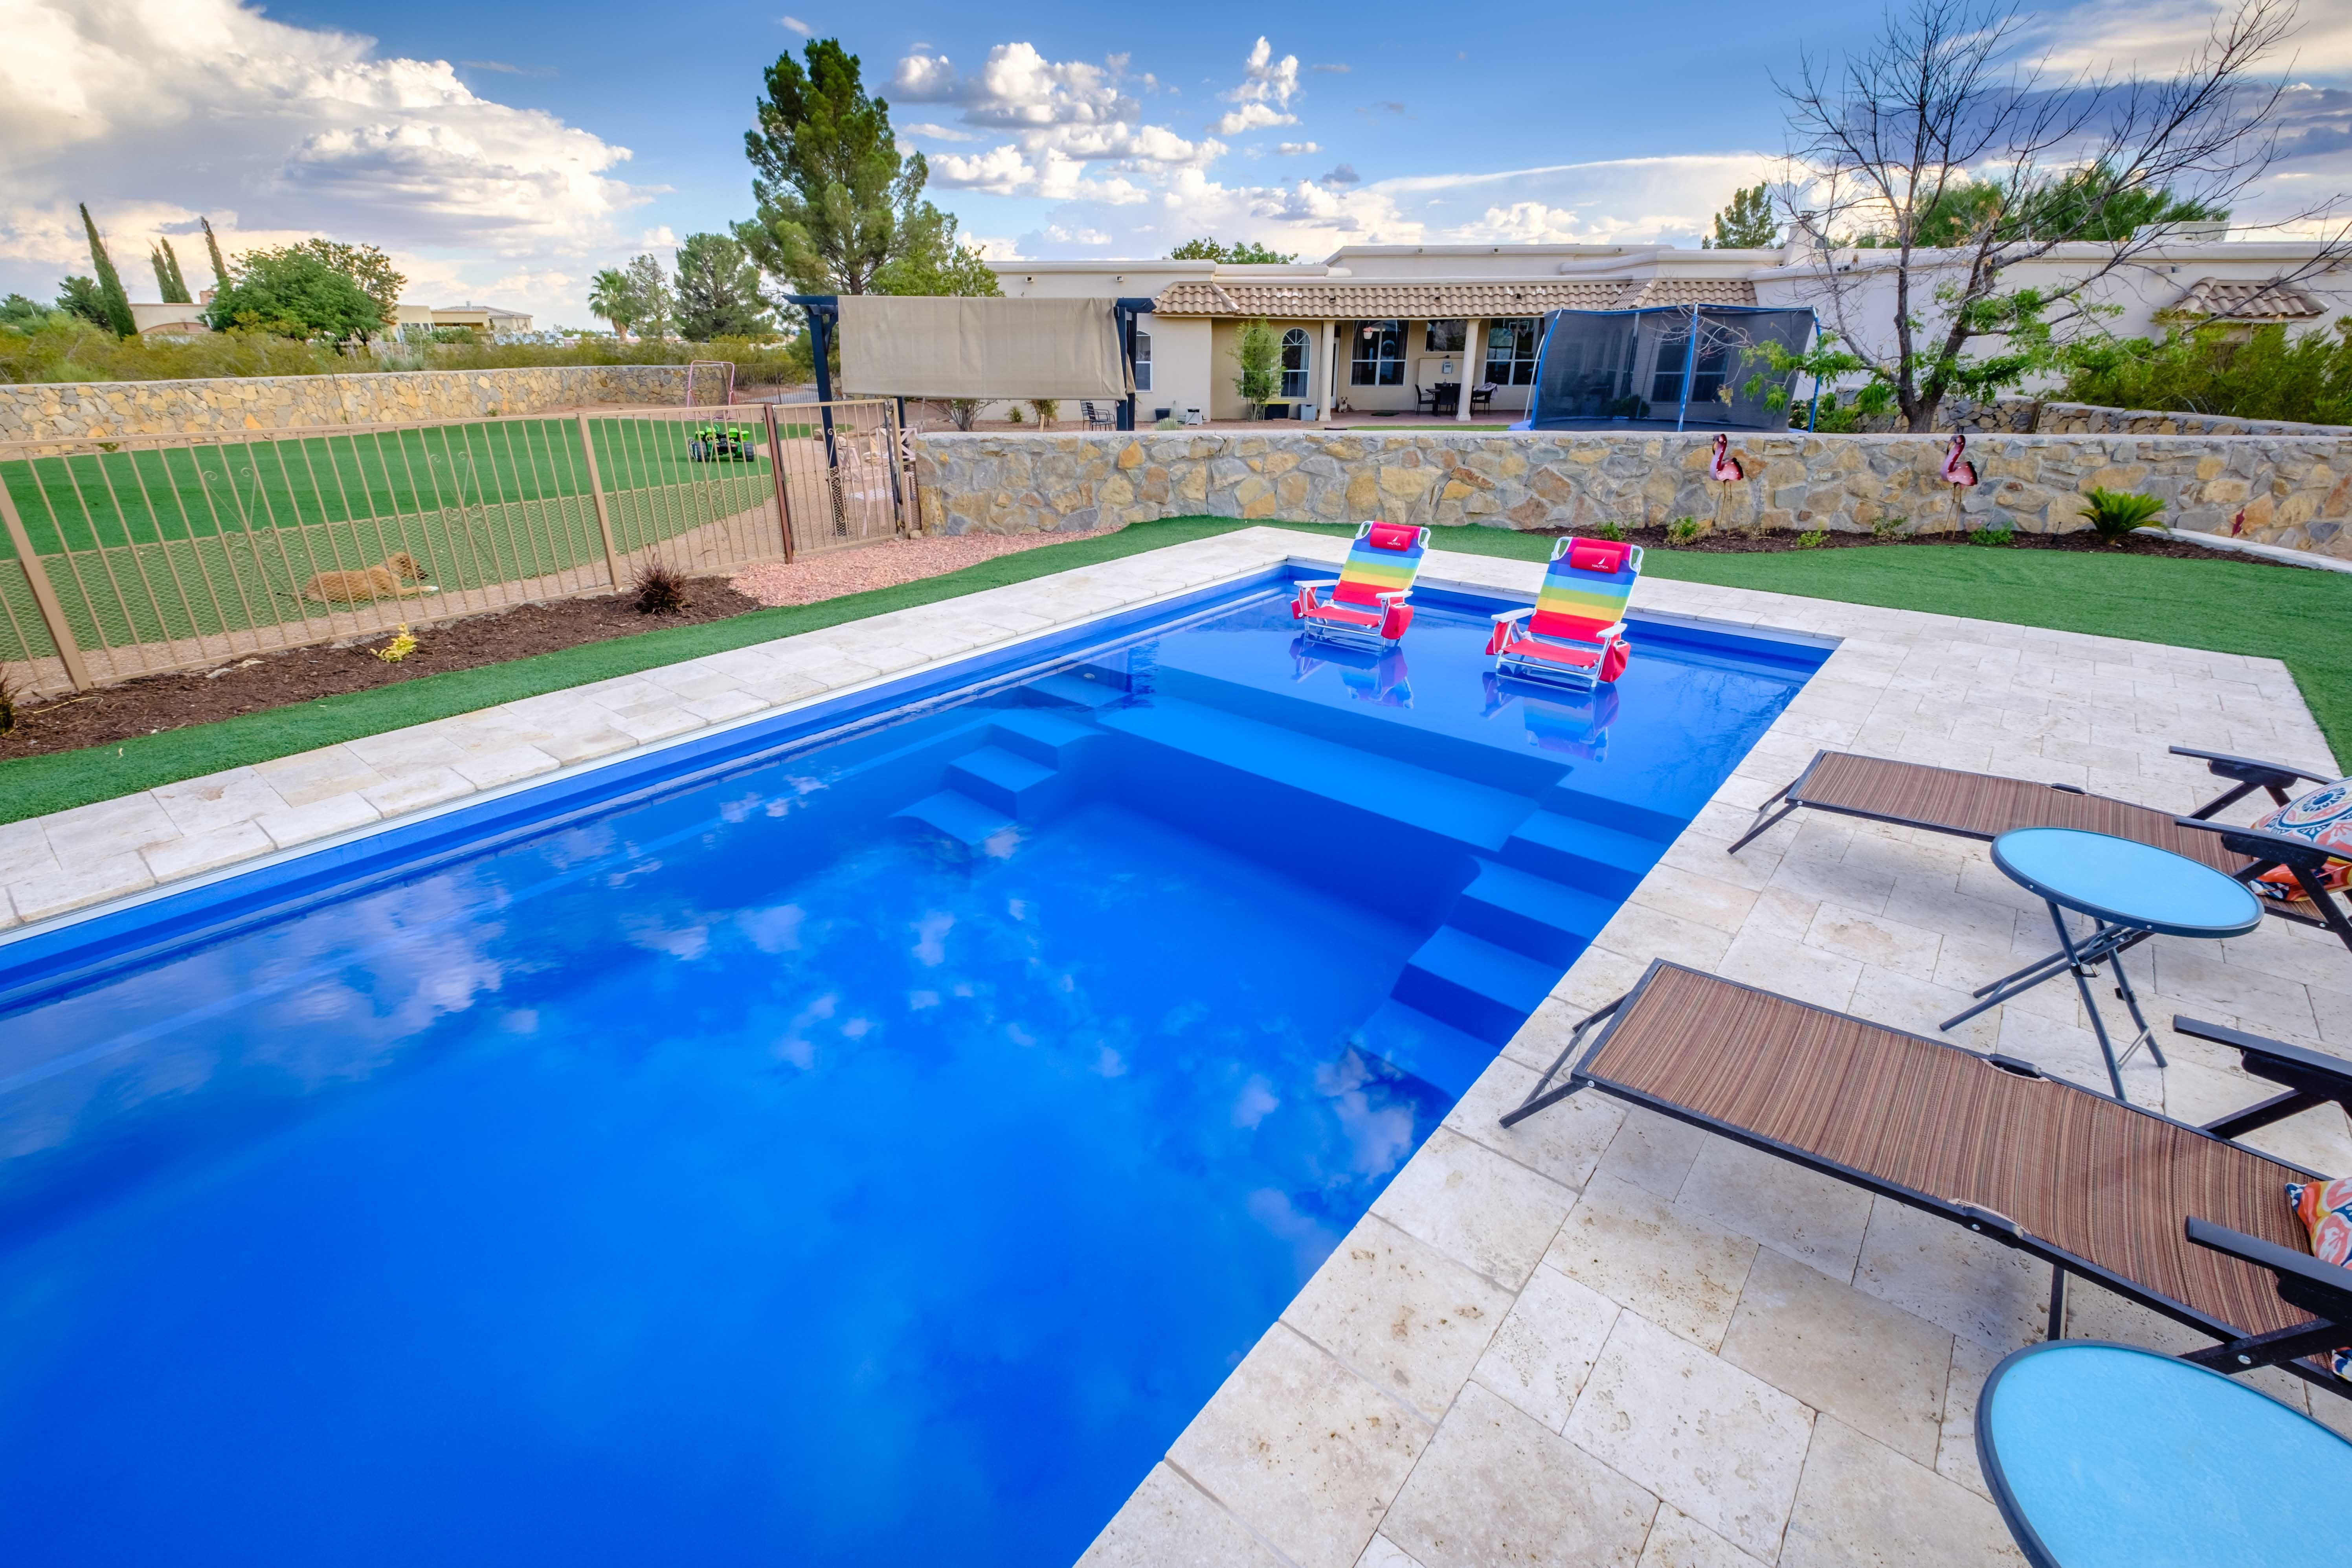 Happiness Is Living In New Mexico Where You Get To Enjoy An Imagine Pools Freedom Fiberglass Swimming Pool All Yea Pool Houses Fiberglass Swimming Pools Pool